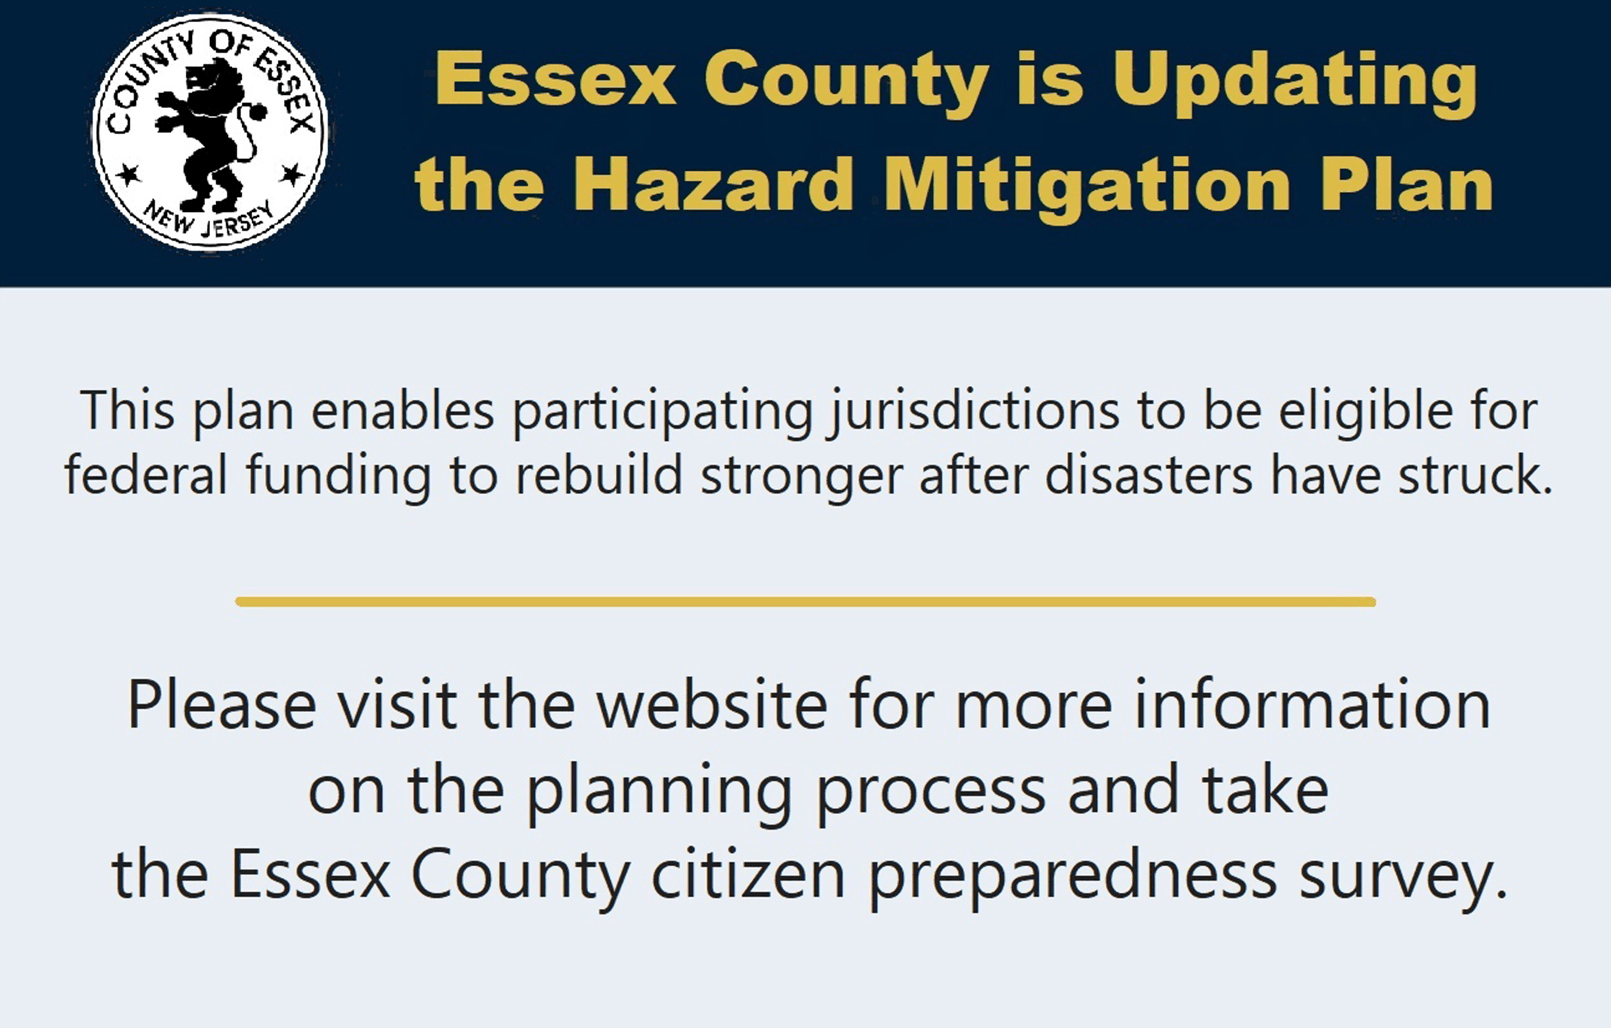 Essex County is updating its Hazard Mitigation Plan